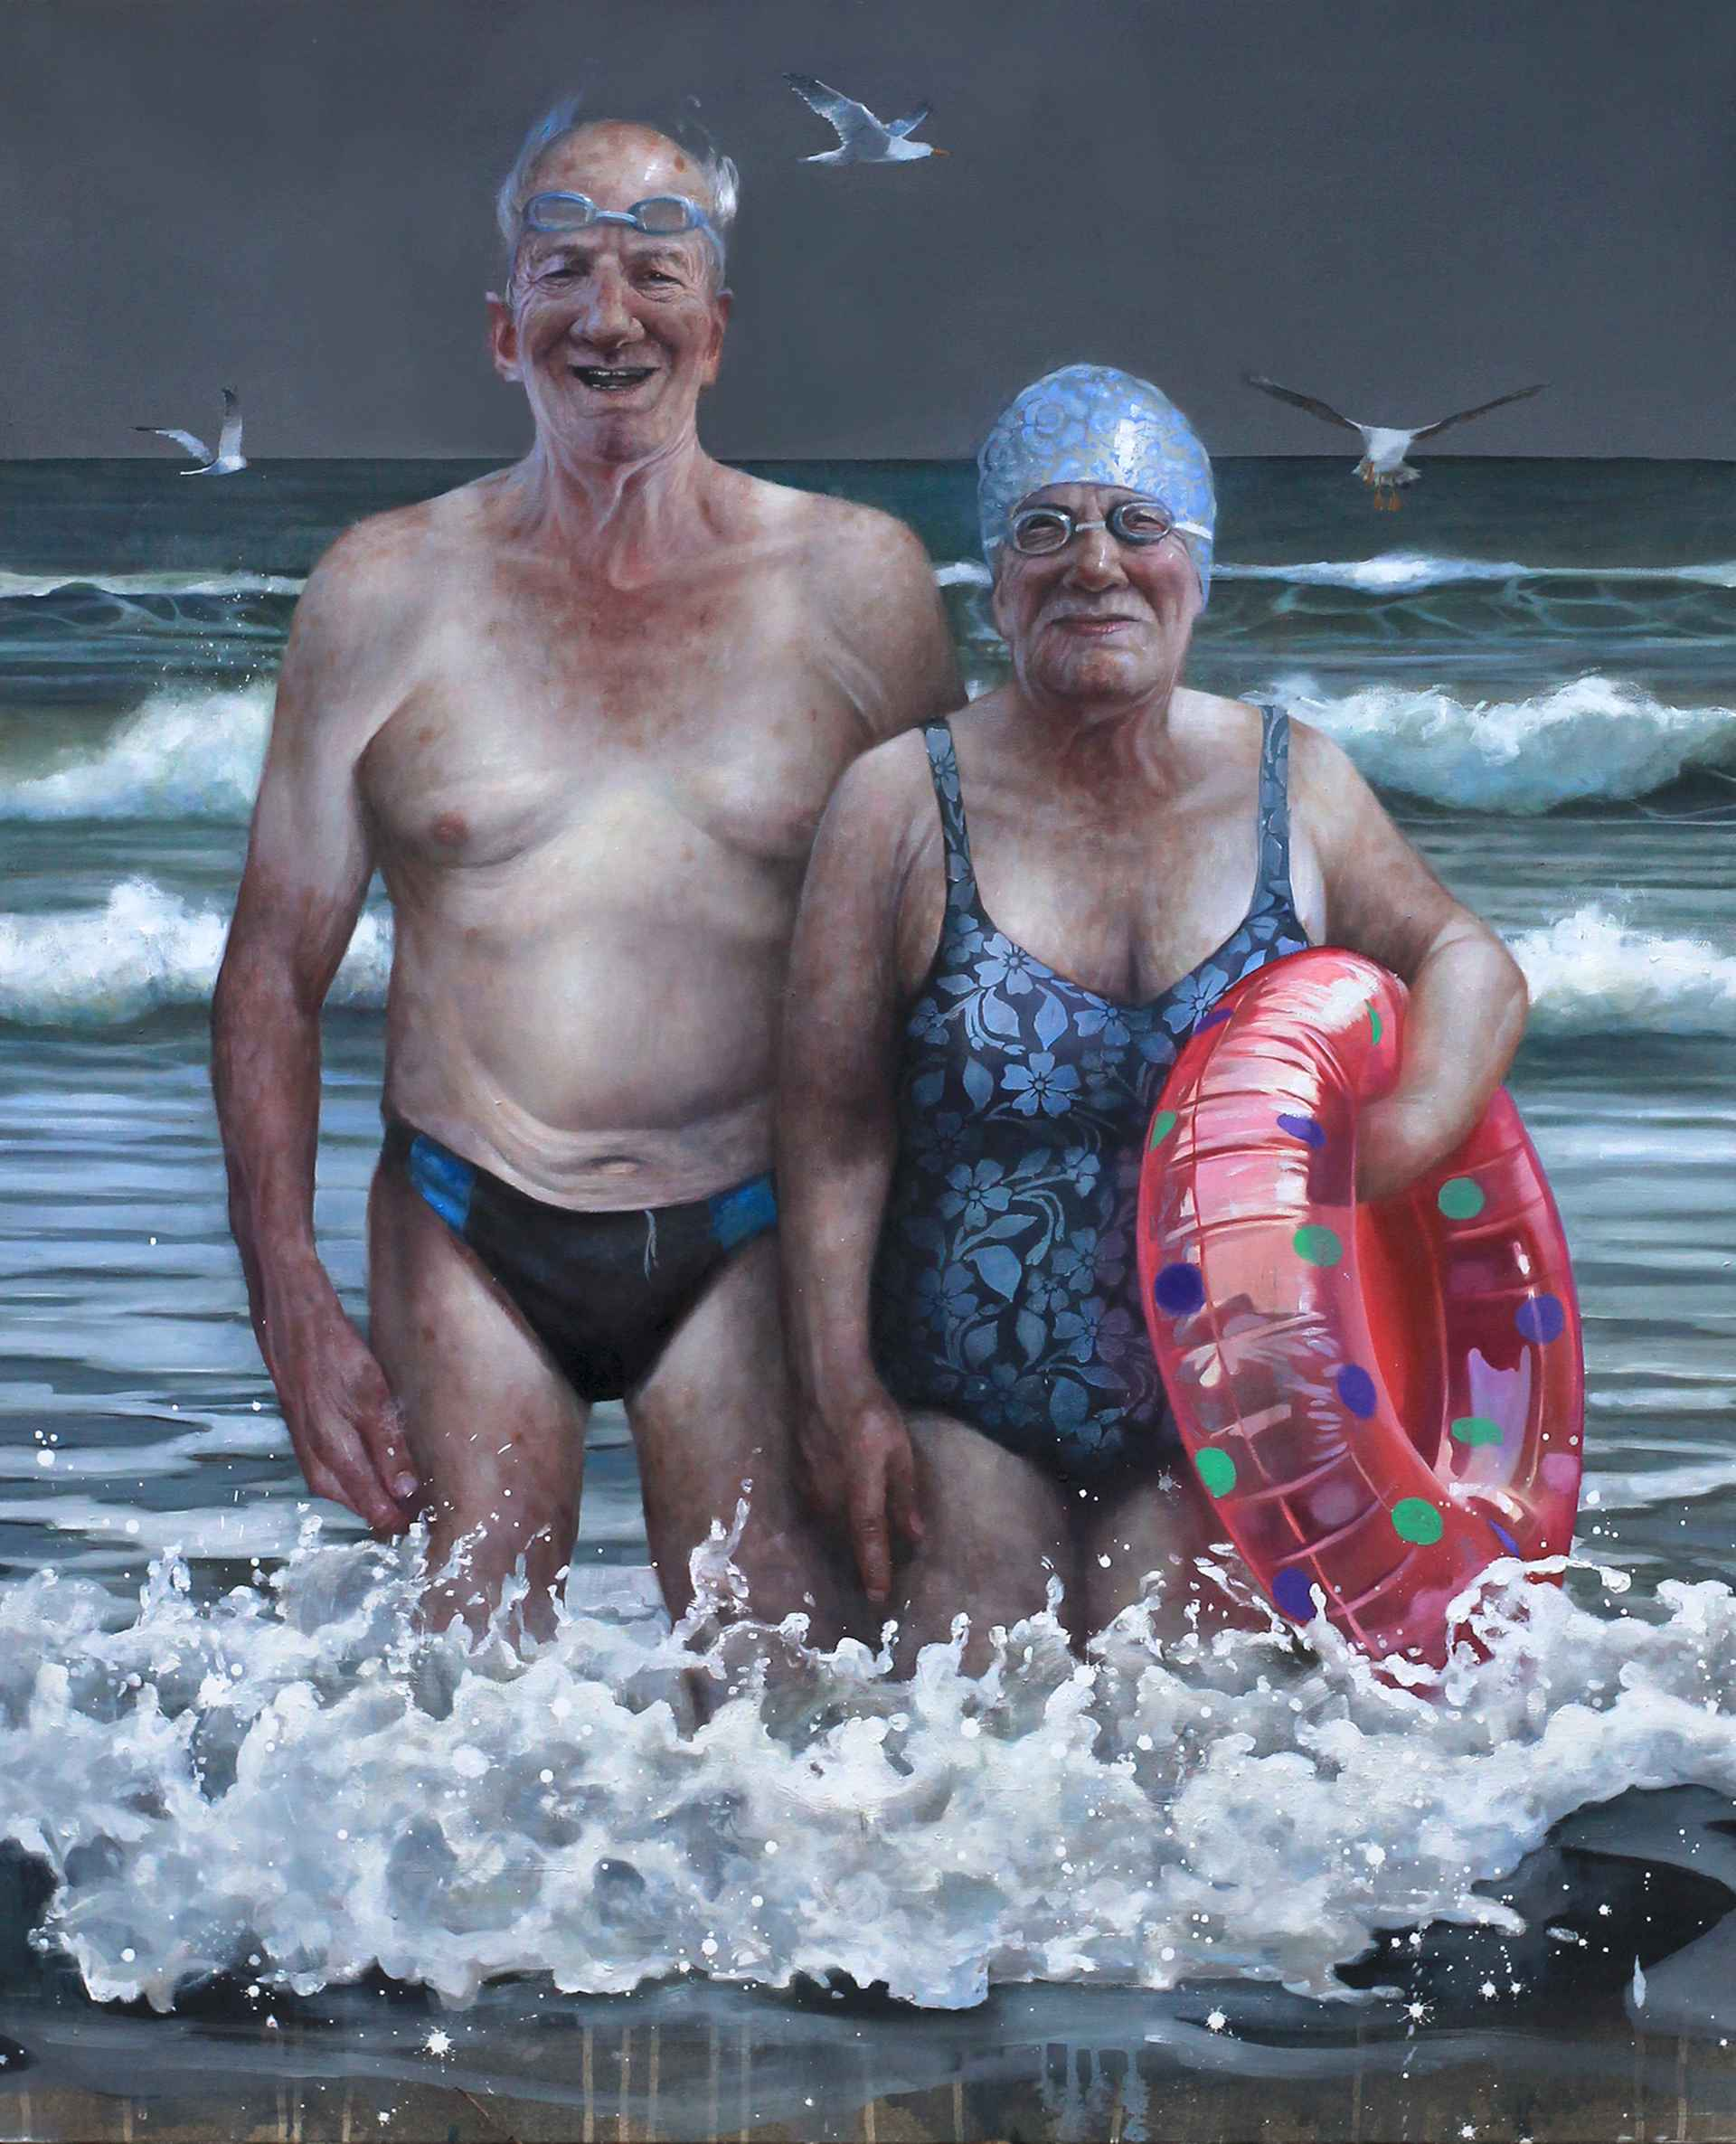 Enduring love, evoking the stoicism within a long married life